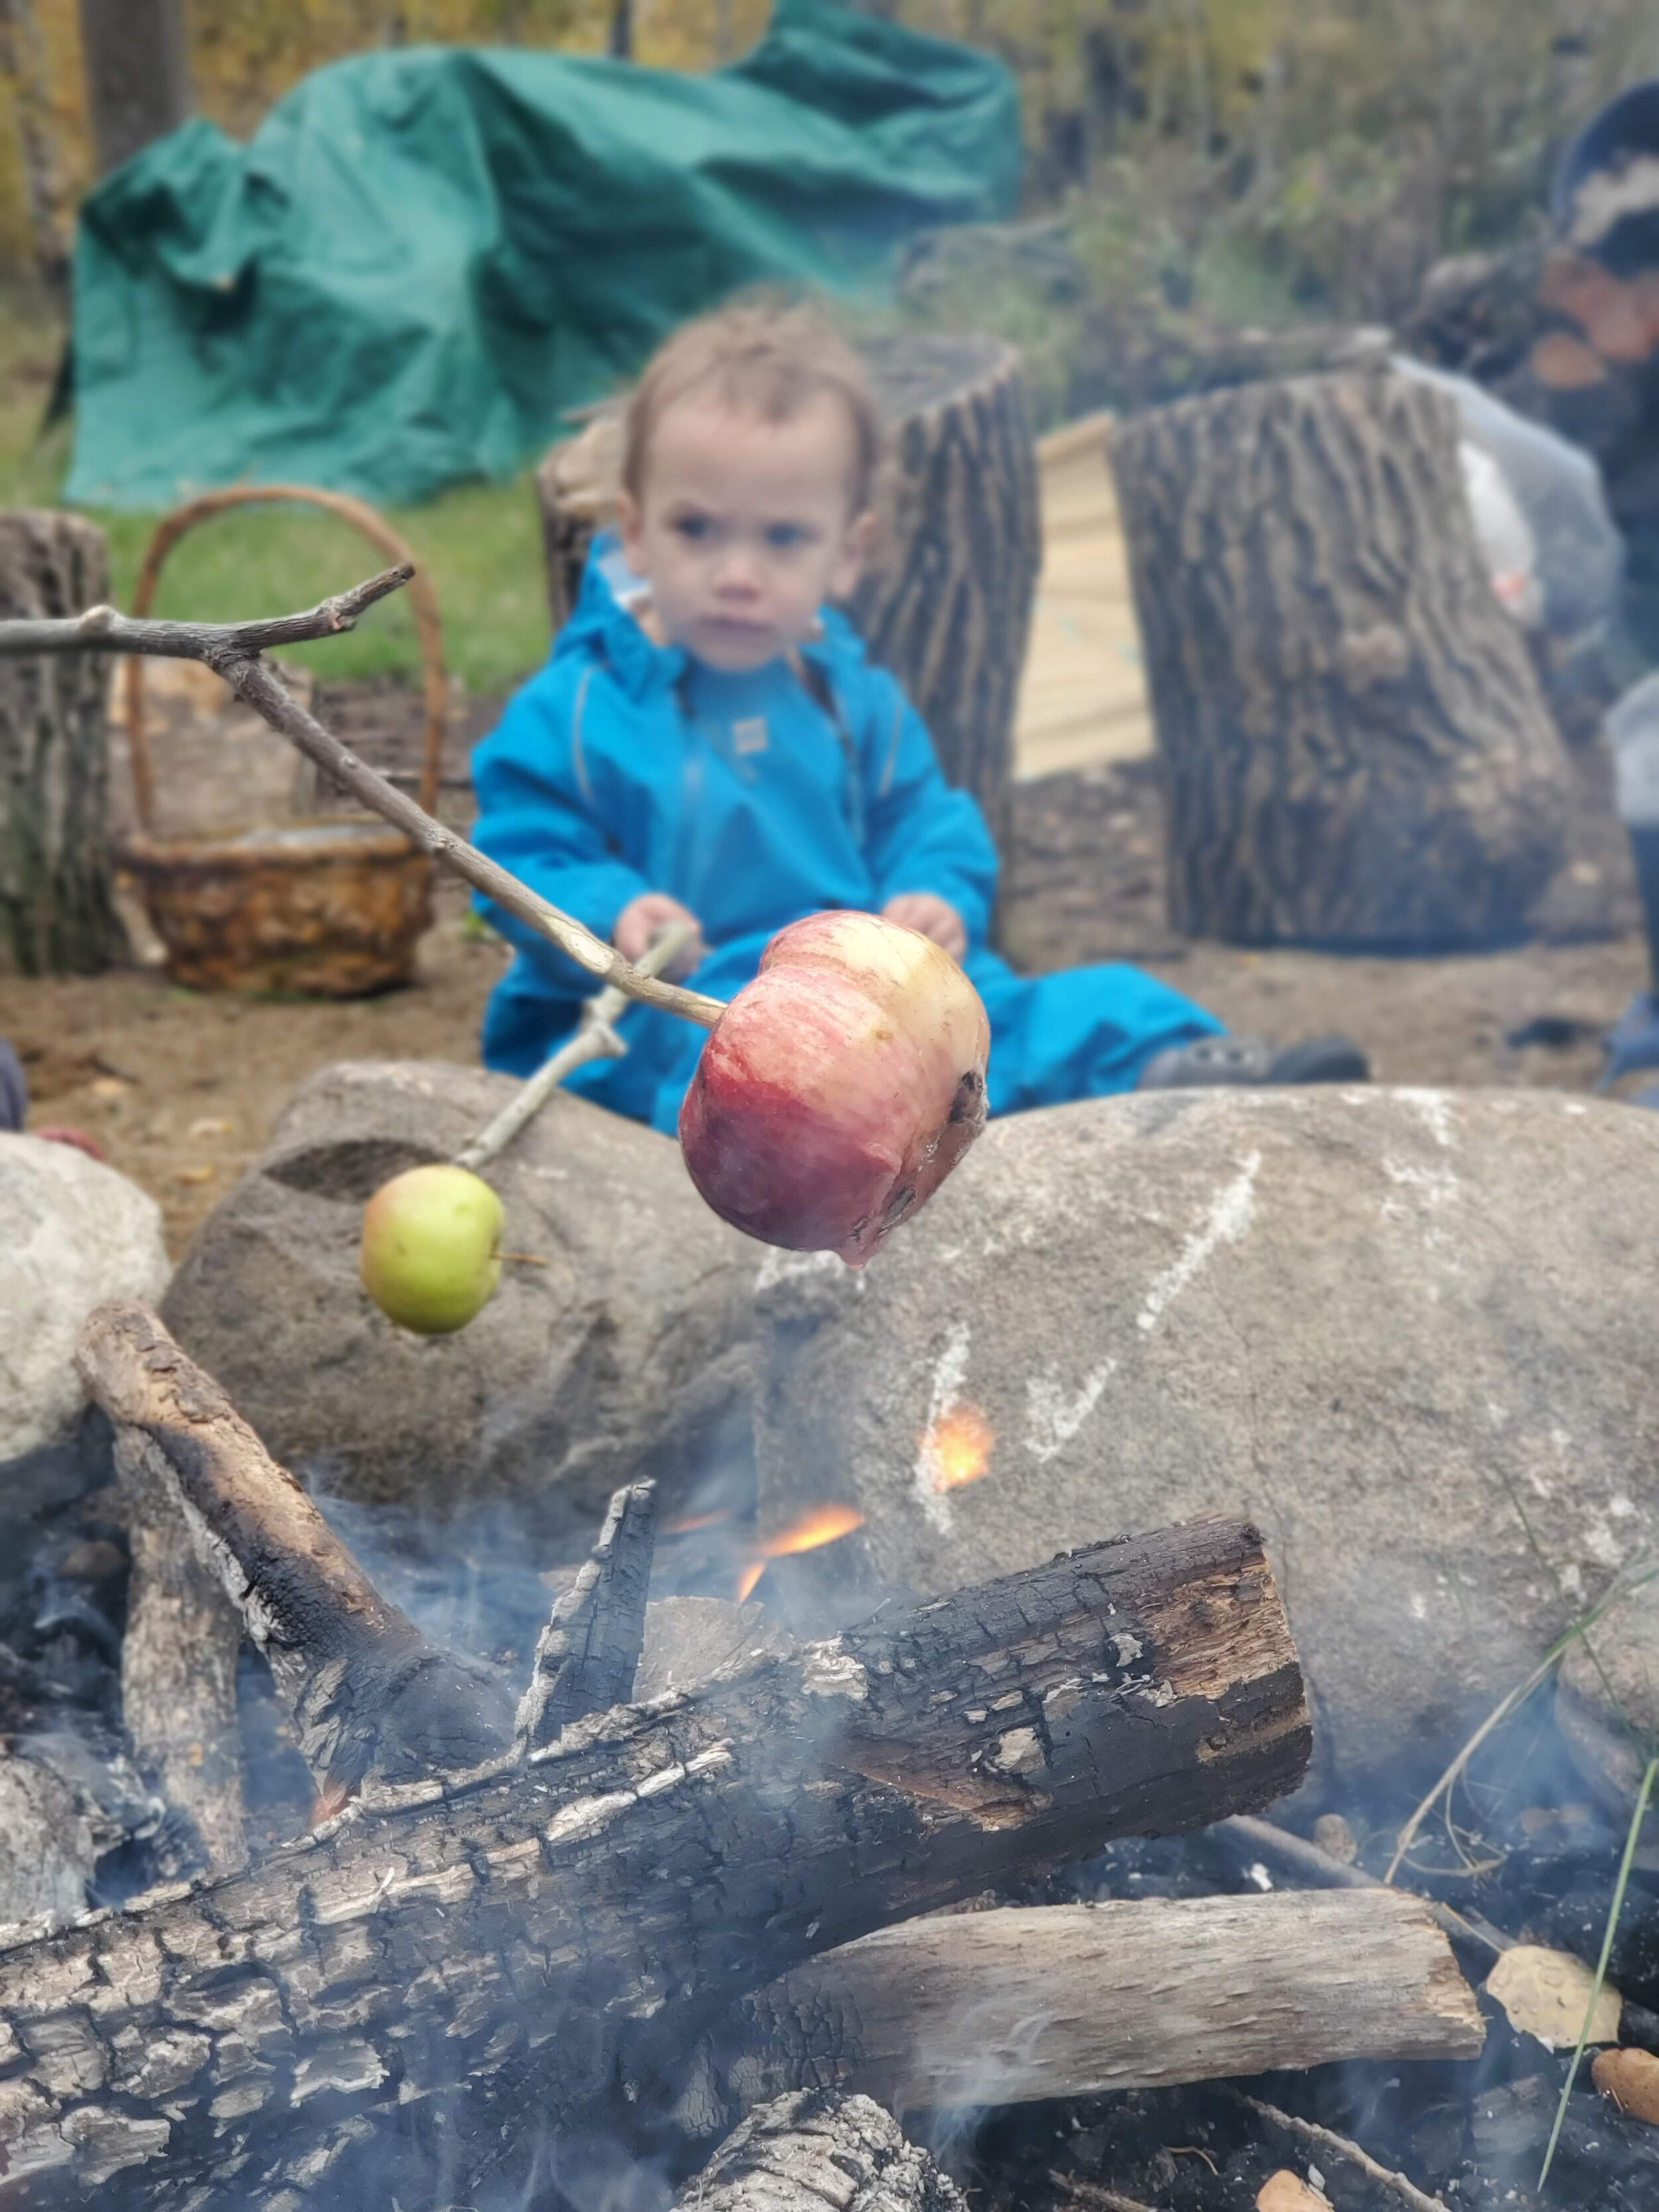 We ended with an apple roast, adding cinnamon and sugar much to Paris' delight. Seeing the little ones paying such close attention to fire safety was the sweetest part of the day. I felt proud.